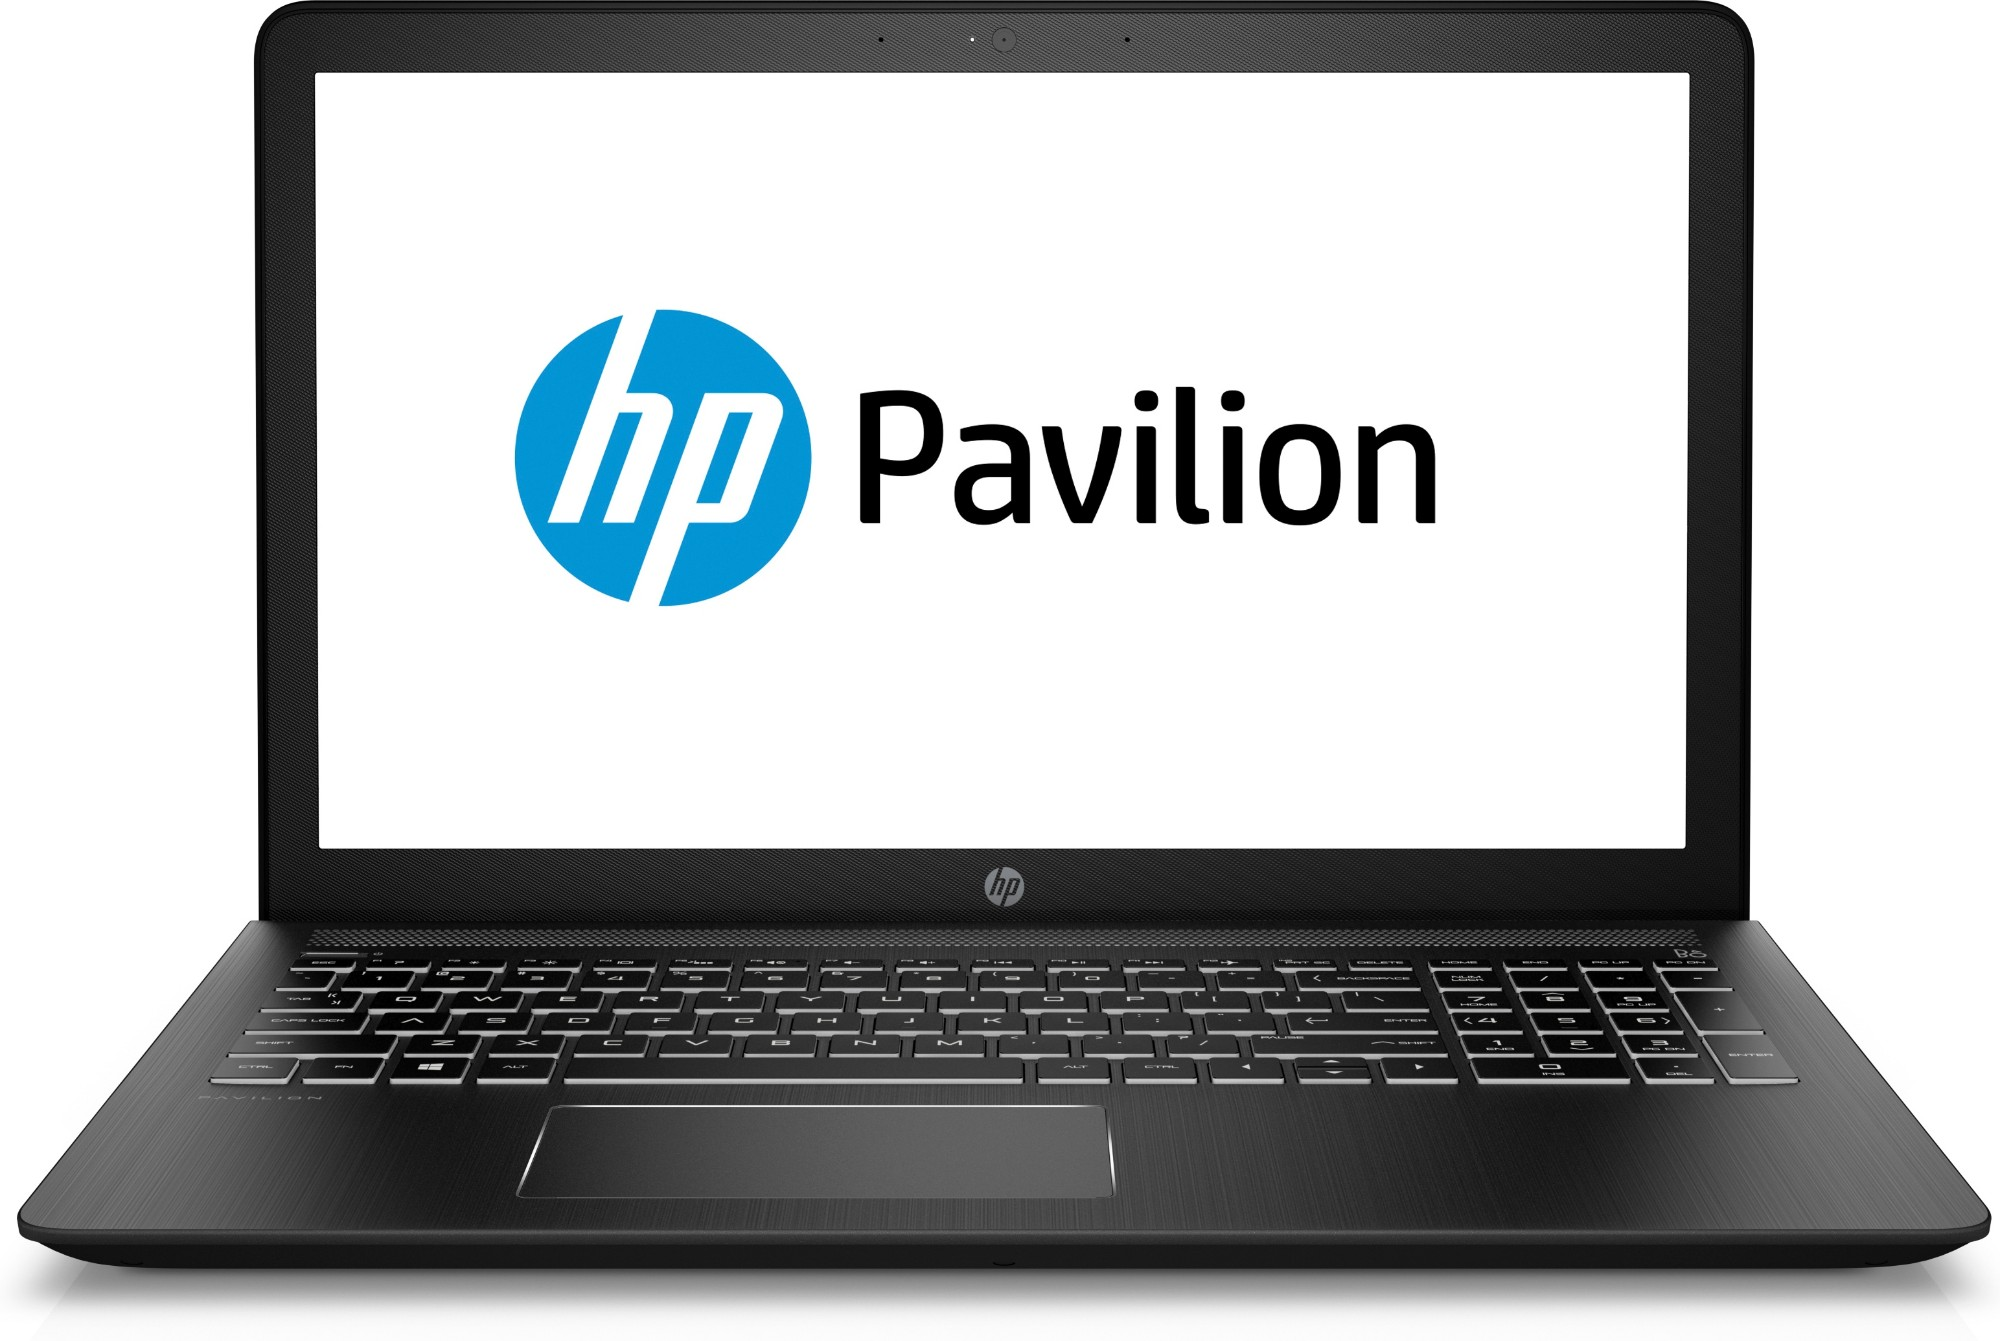 "HP Pavilion Power 15-cb004na Black Notebook 39.6 cm (15.6"") 1920 x 1080 pixels 2.5 GHz 7th gen Intel® Core™ i5 i5-7300HQ"